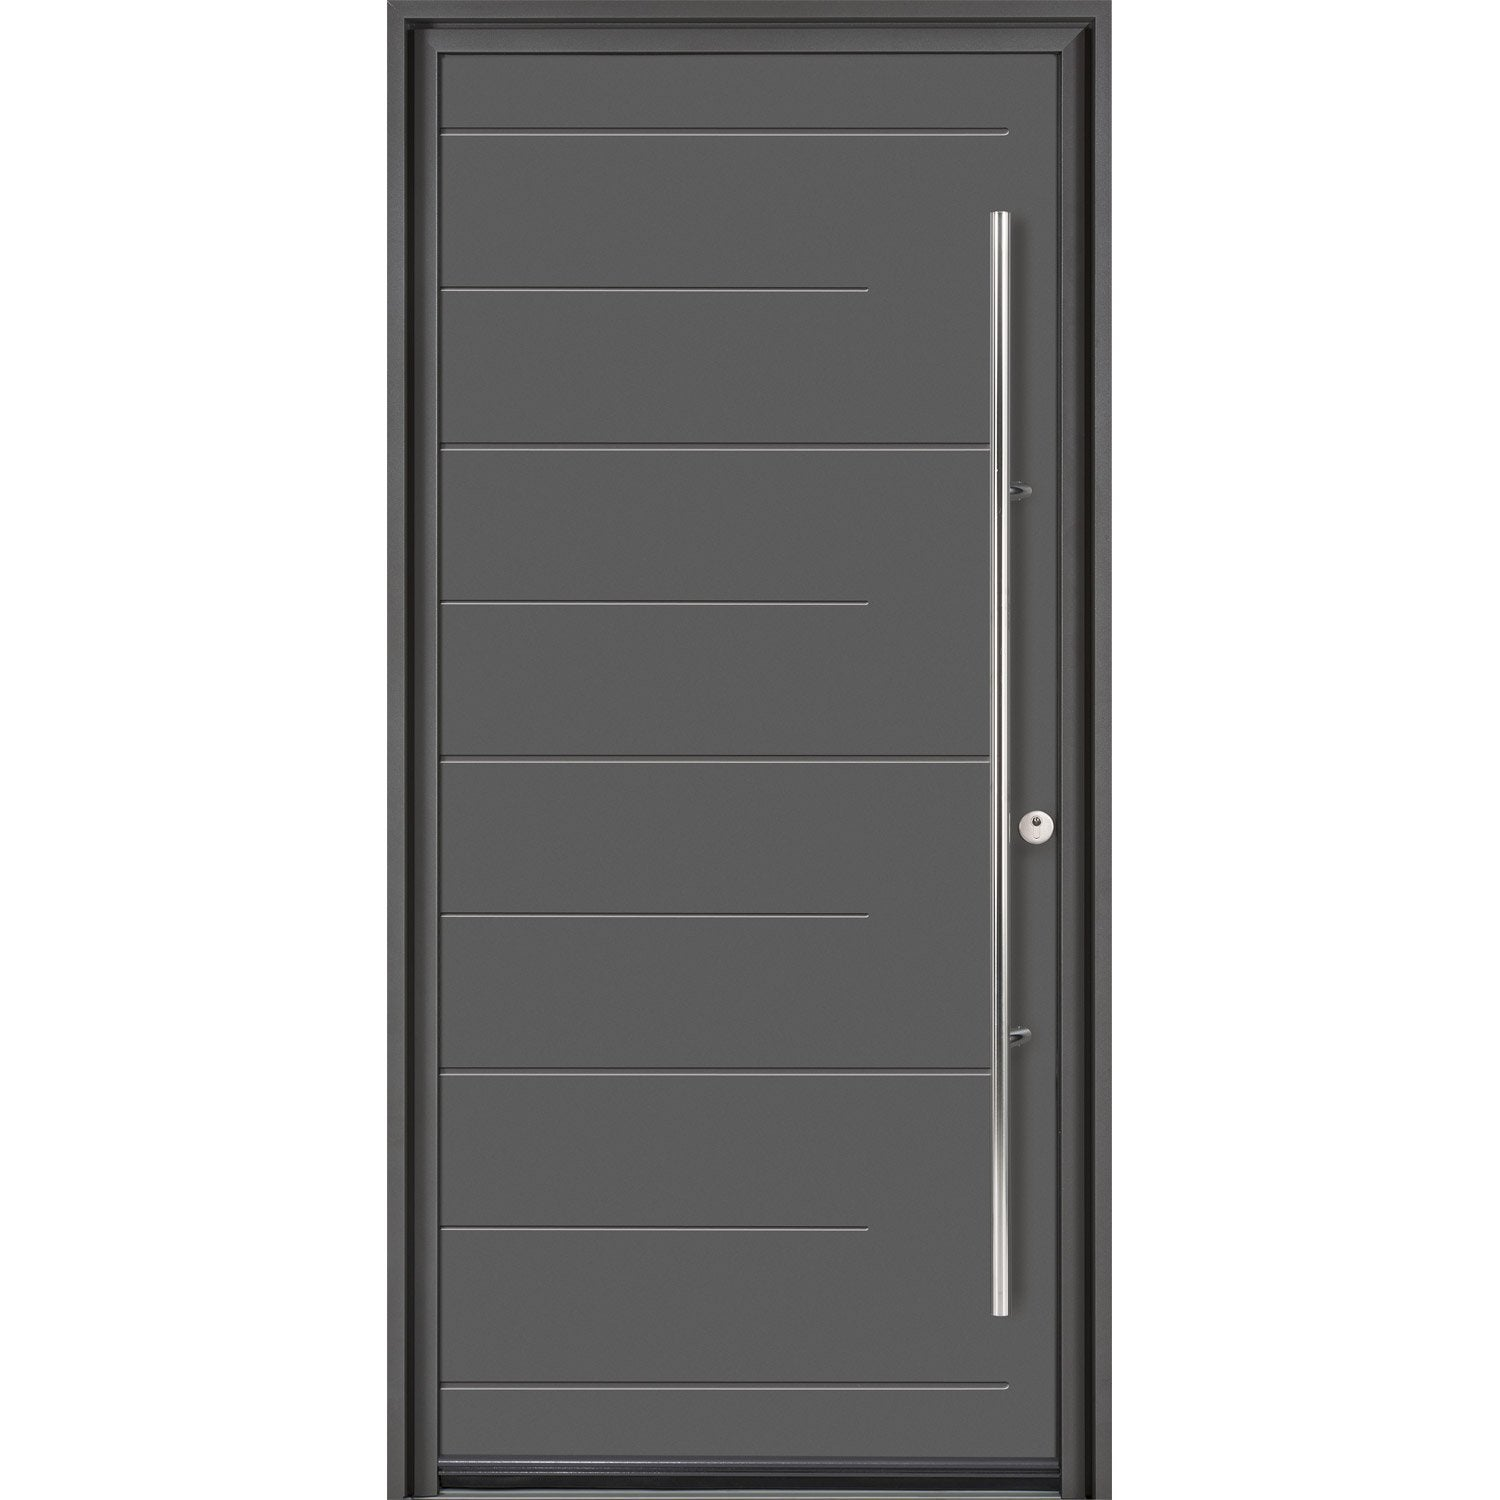 Porte d 39 entr e sur mesure en aluminium soprano excellence for Tringle porte d entree